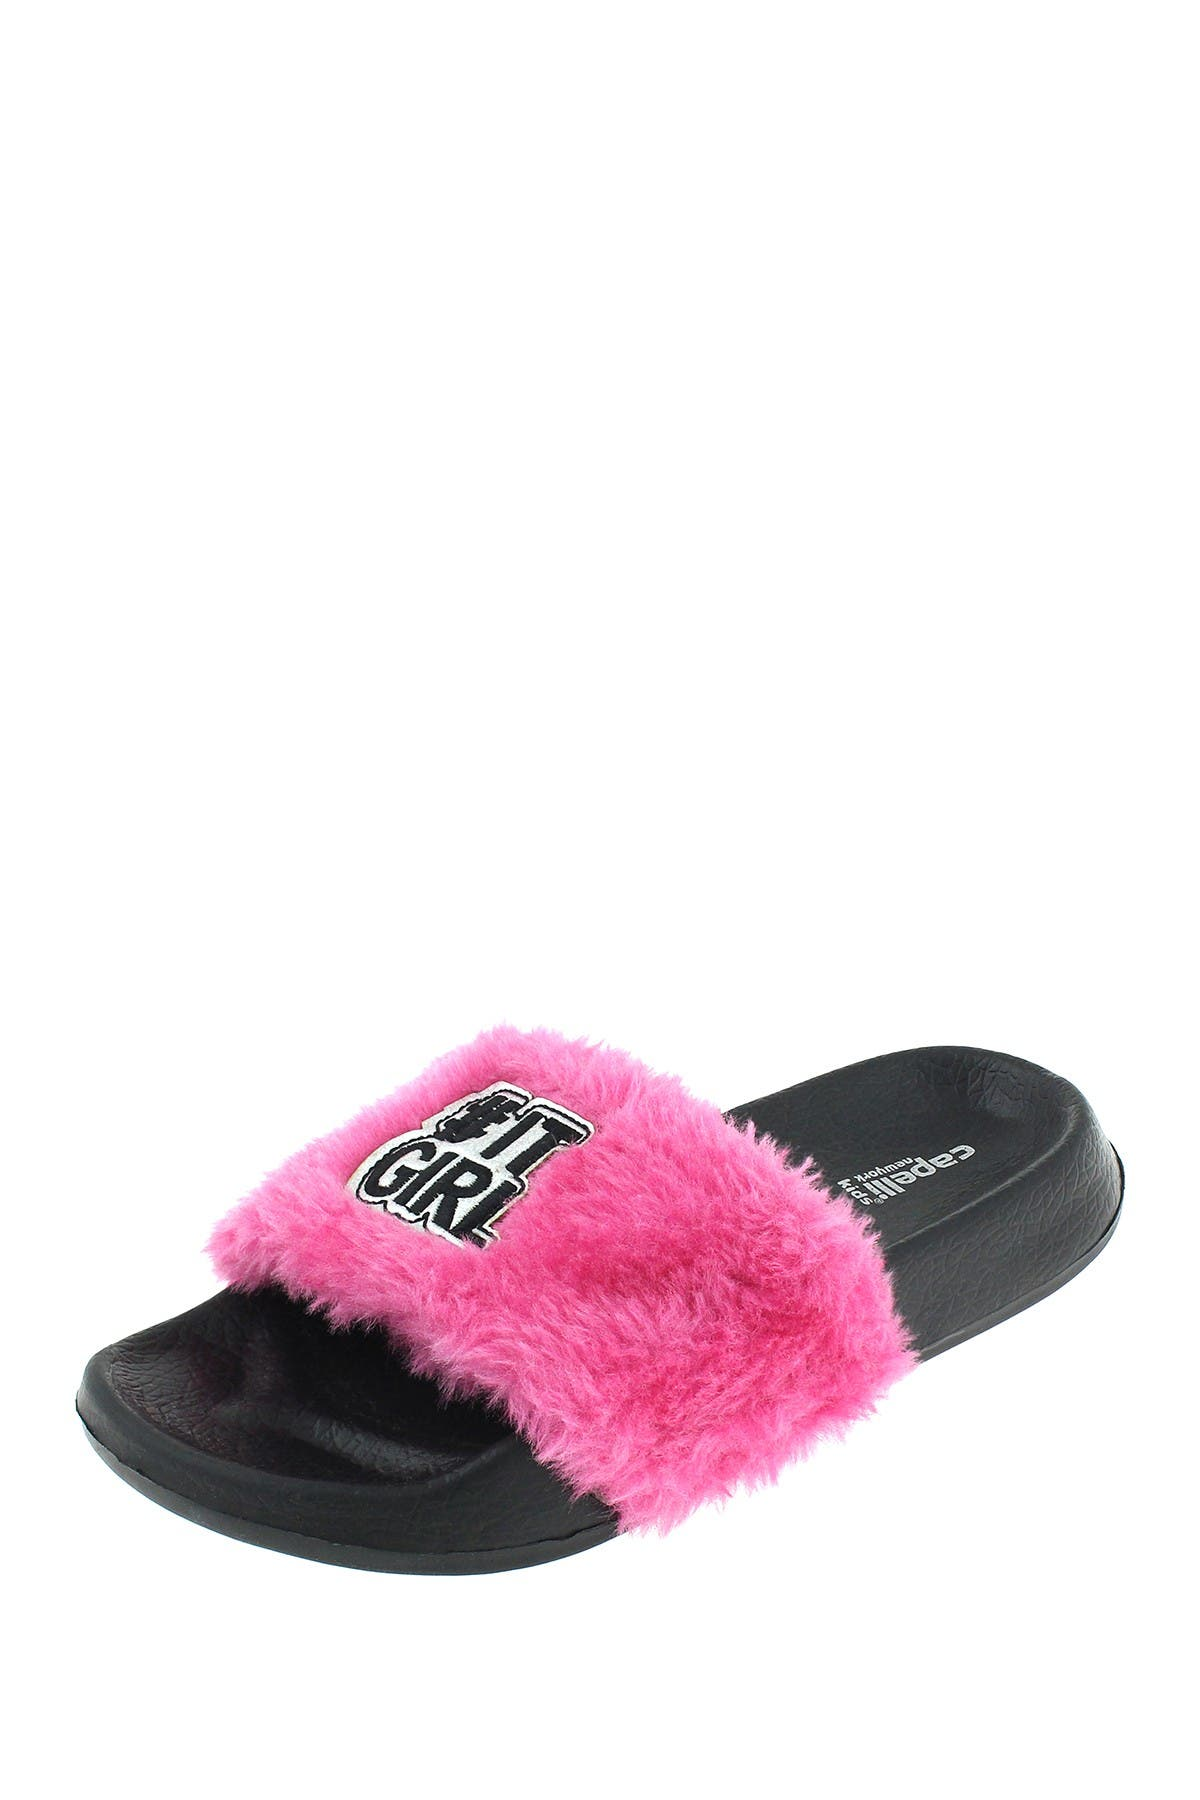 Image of CAPELLI OF NEW YORK It Girl Faux Fur Slide Sandal (Toddler & Little Kid)